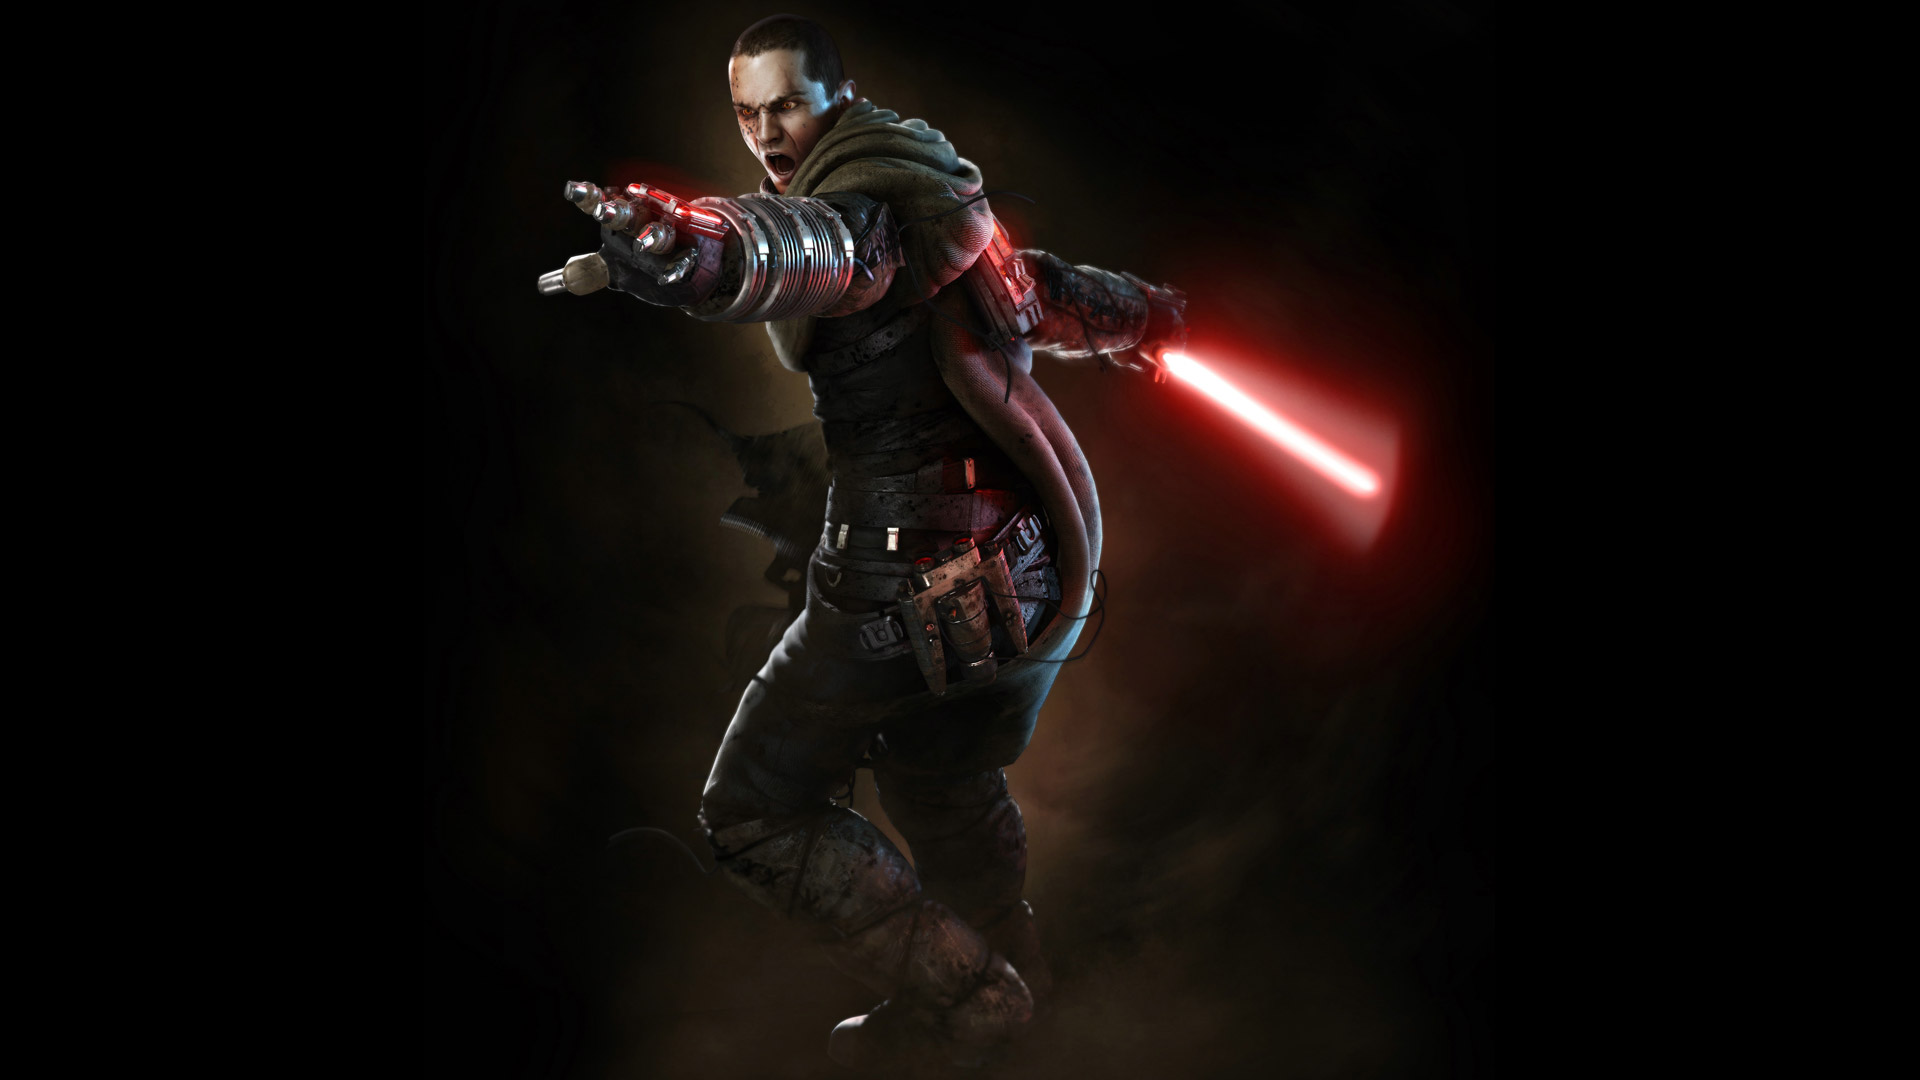 Star Wars: The Force Unleashed Wallpaper in 1920x1080